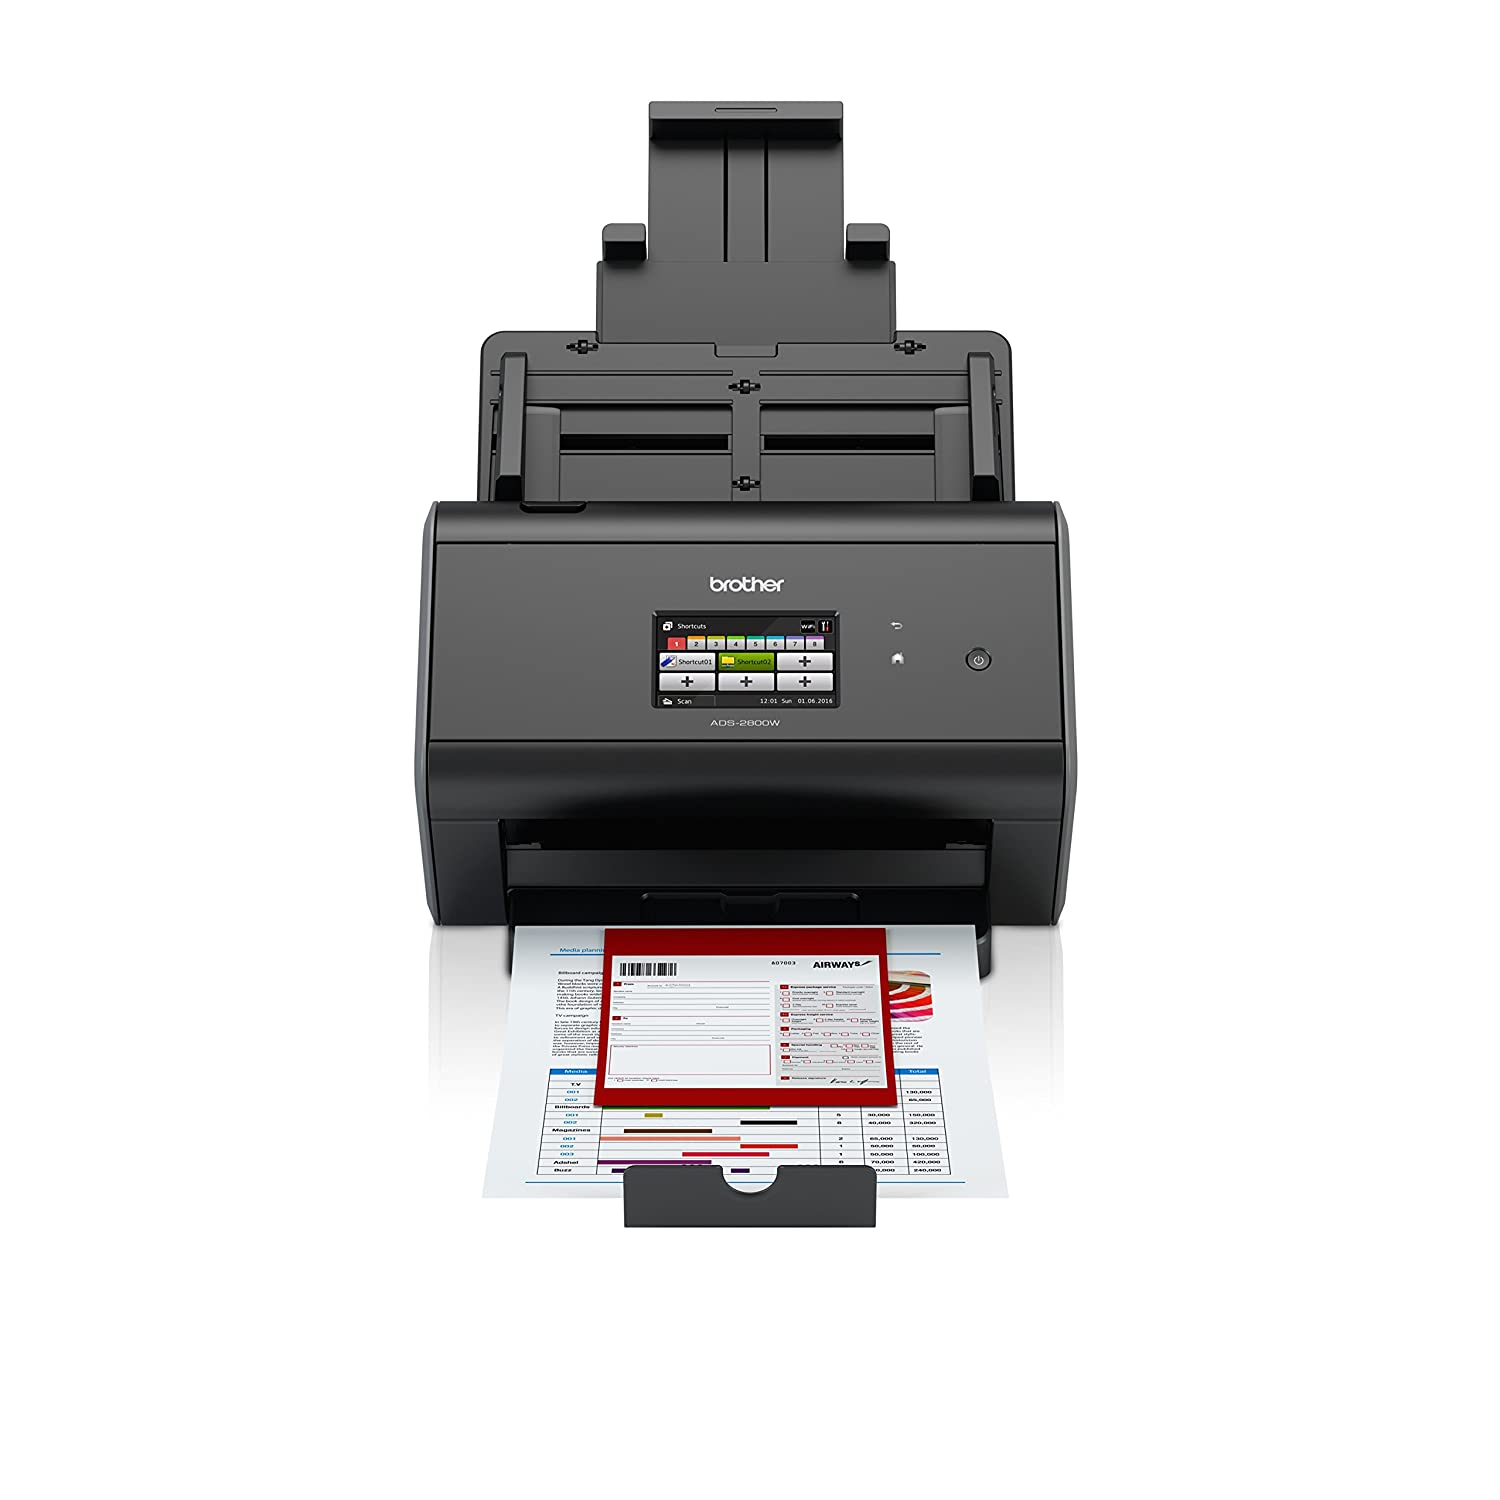 BROTHER ADS-2800W PRINTER DRIVER FOR WINDOWS 7